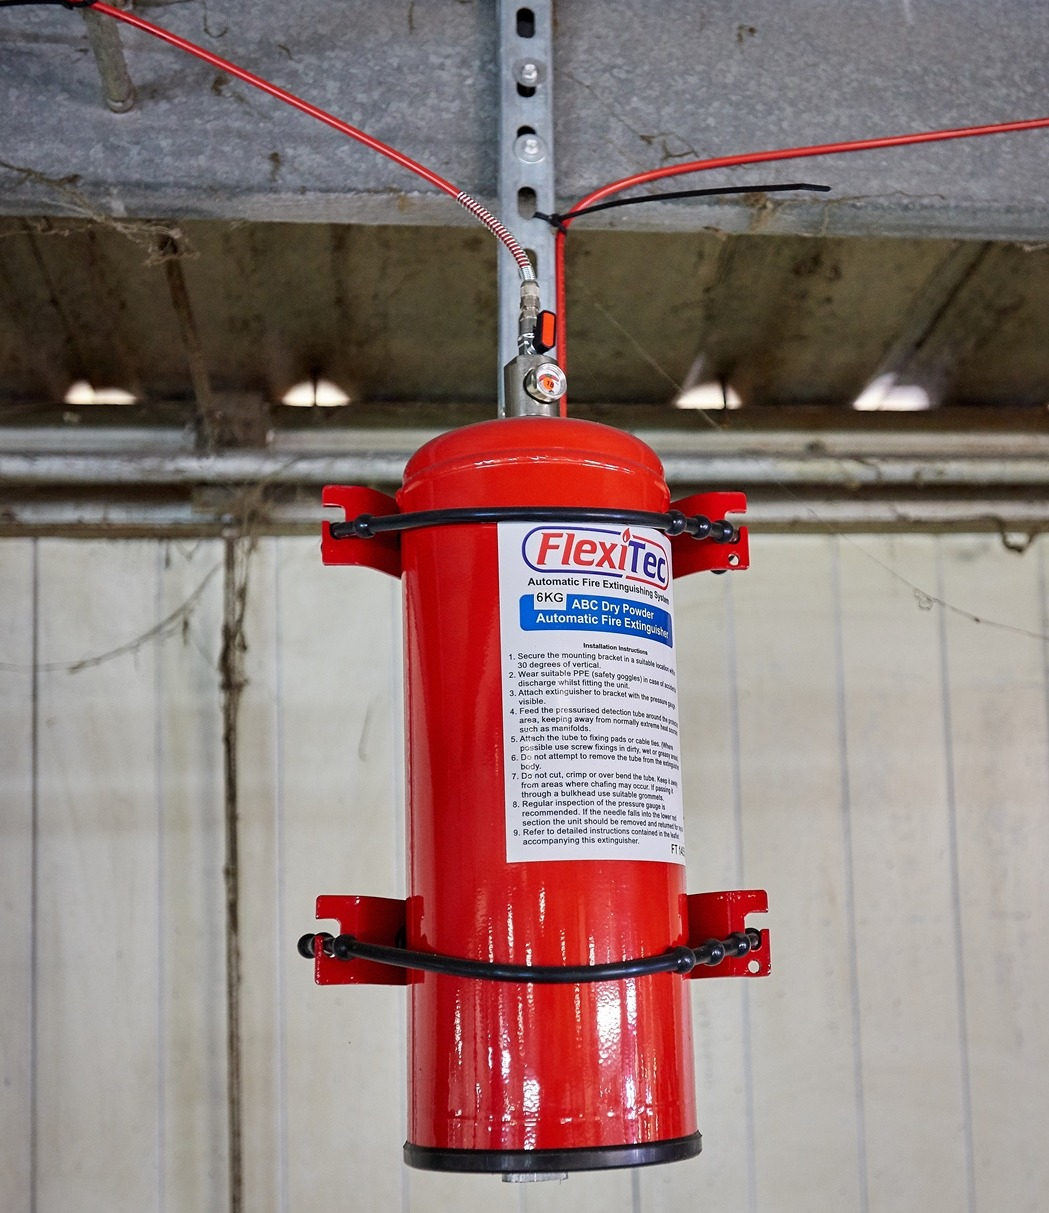 Dry powder automatic fire extinguisher in situ at Wiser Recycling's Thetford facility